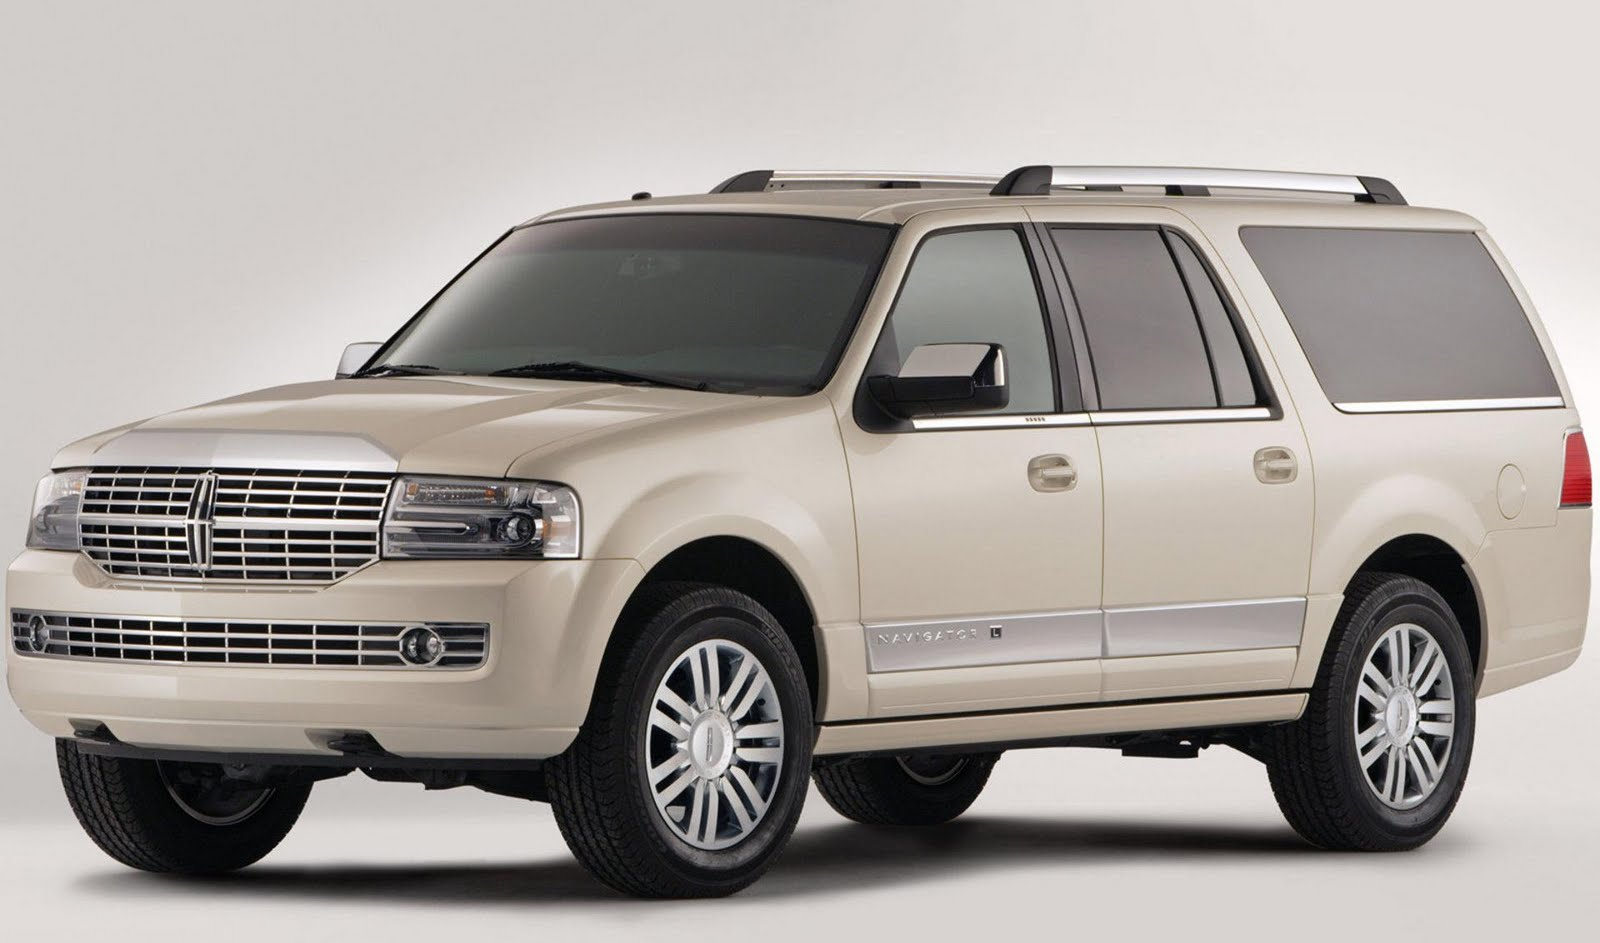 According to Automotive News , the long-forgotten Lincoln Navigator is